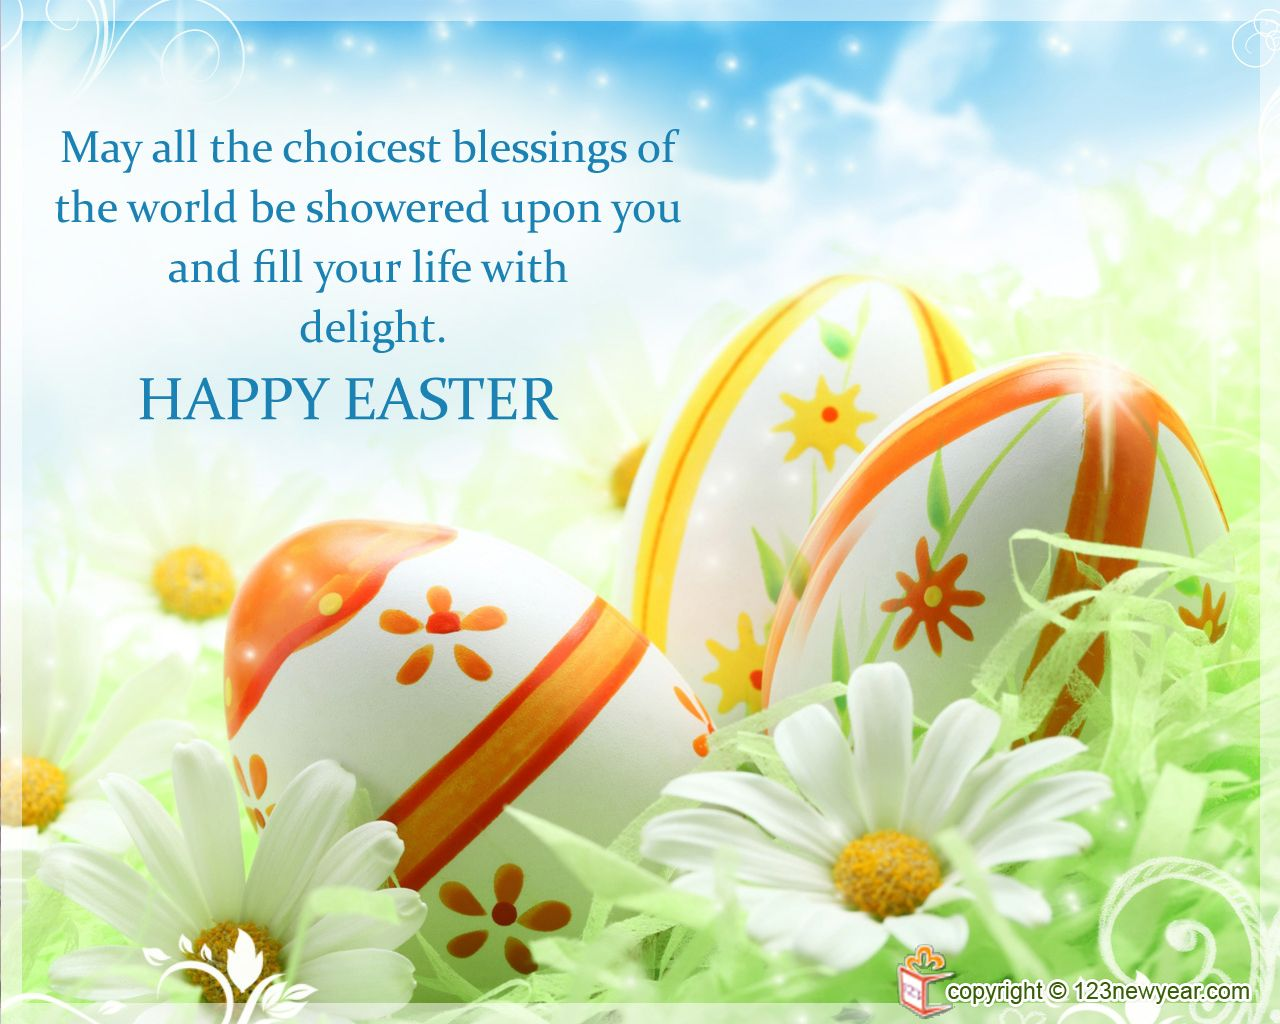 Easter Monday Wallpapers 2015 Wallpapers in 2019 Happy easter 1280x1024